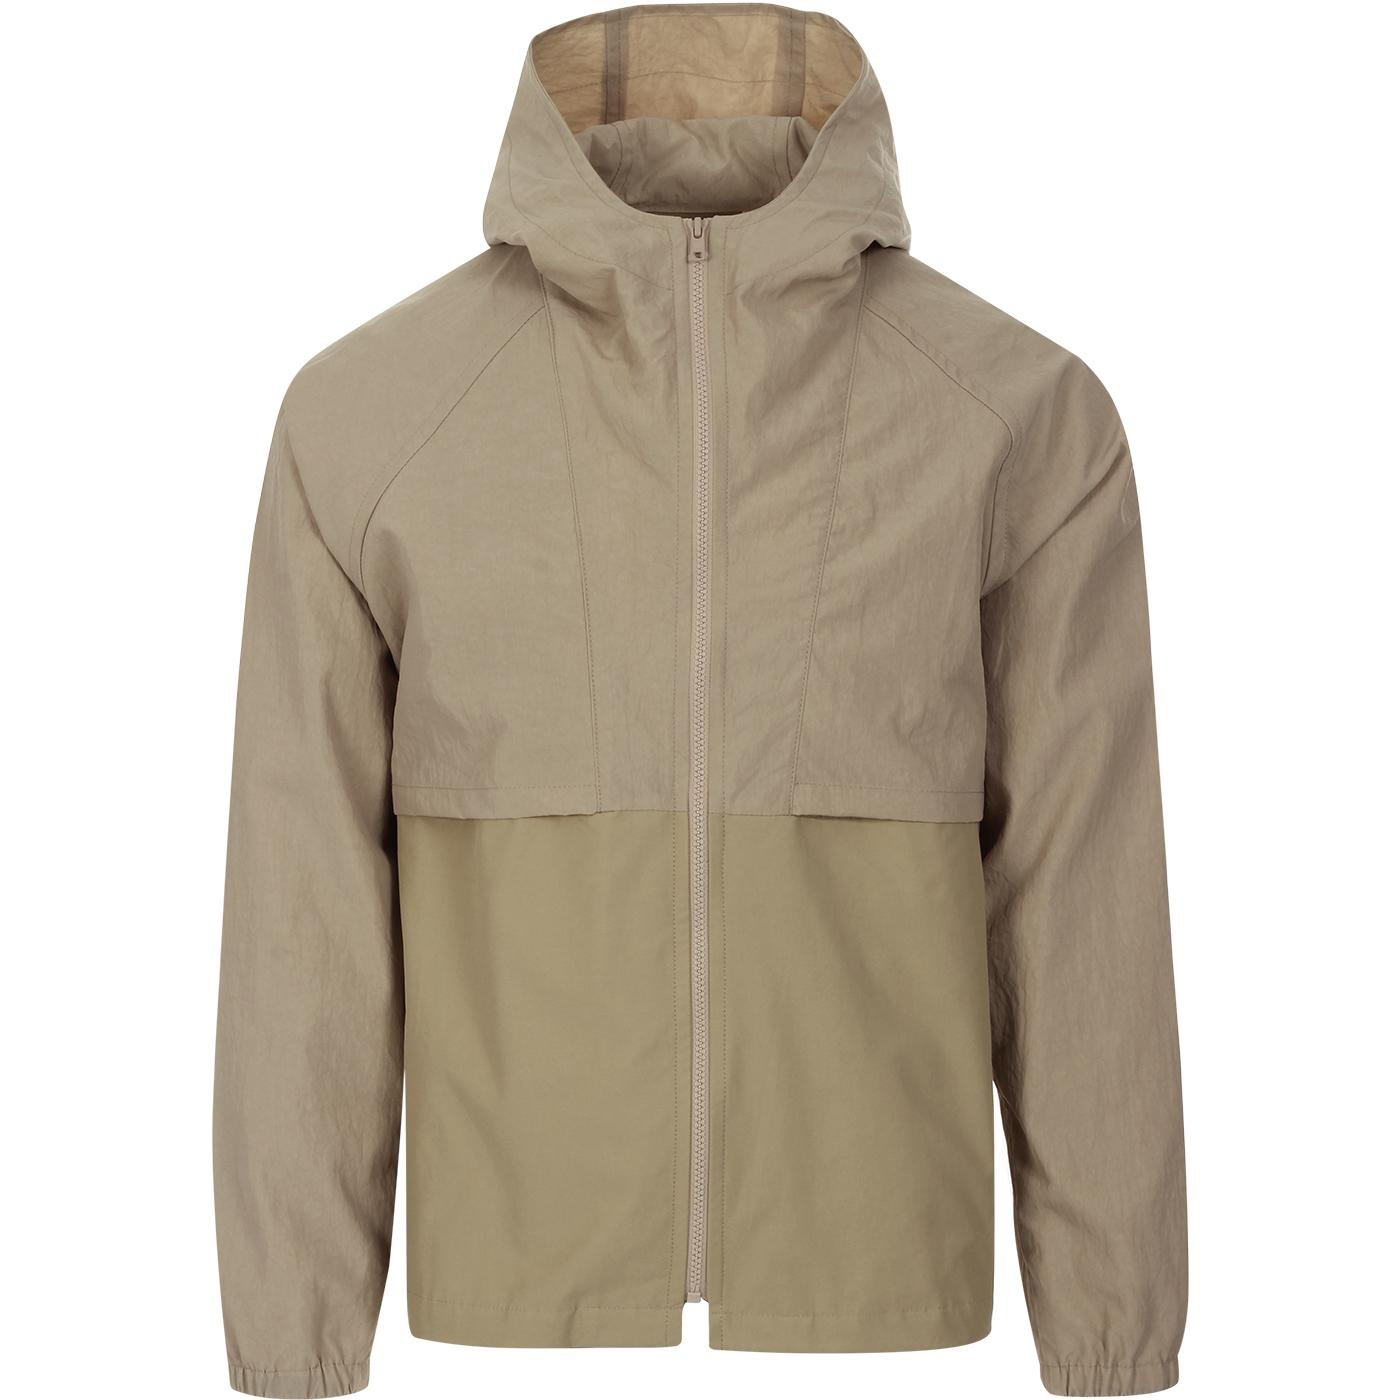 GLOVERALL X LES BASICS Le Short Hooded Jacket S